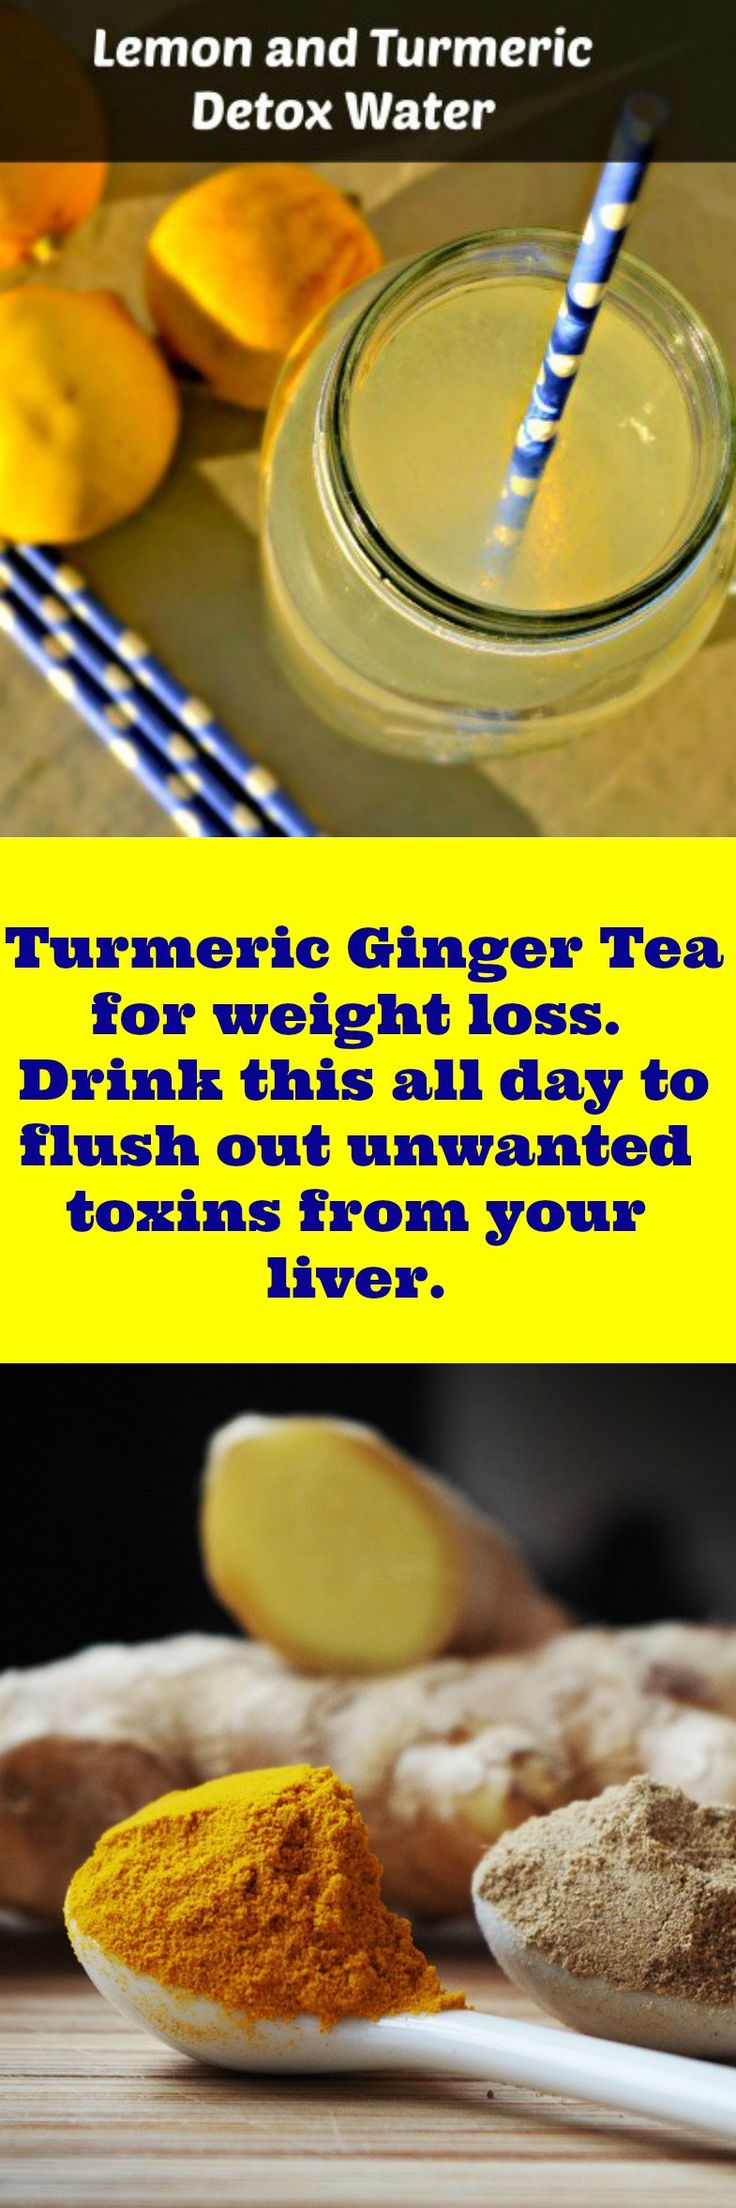 You need to try this Turmeric Ginger Tea for weight loss. Drink this all day to flush out unwanted toxins from your liver.Cleanse and detox for weightloss. Lose weight and gain more energy.